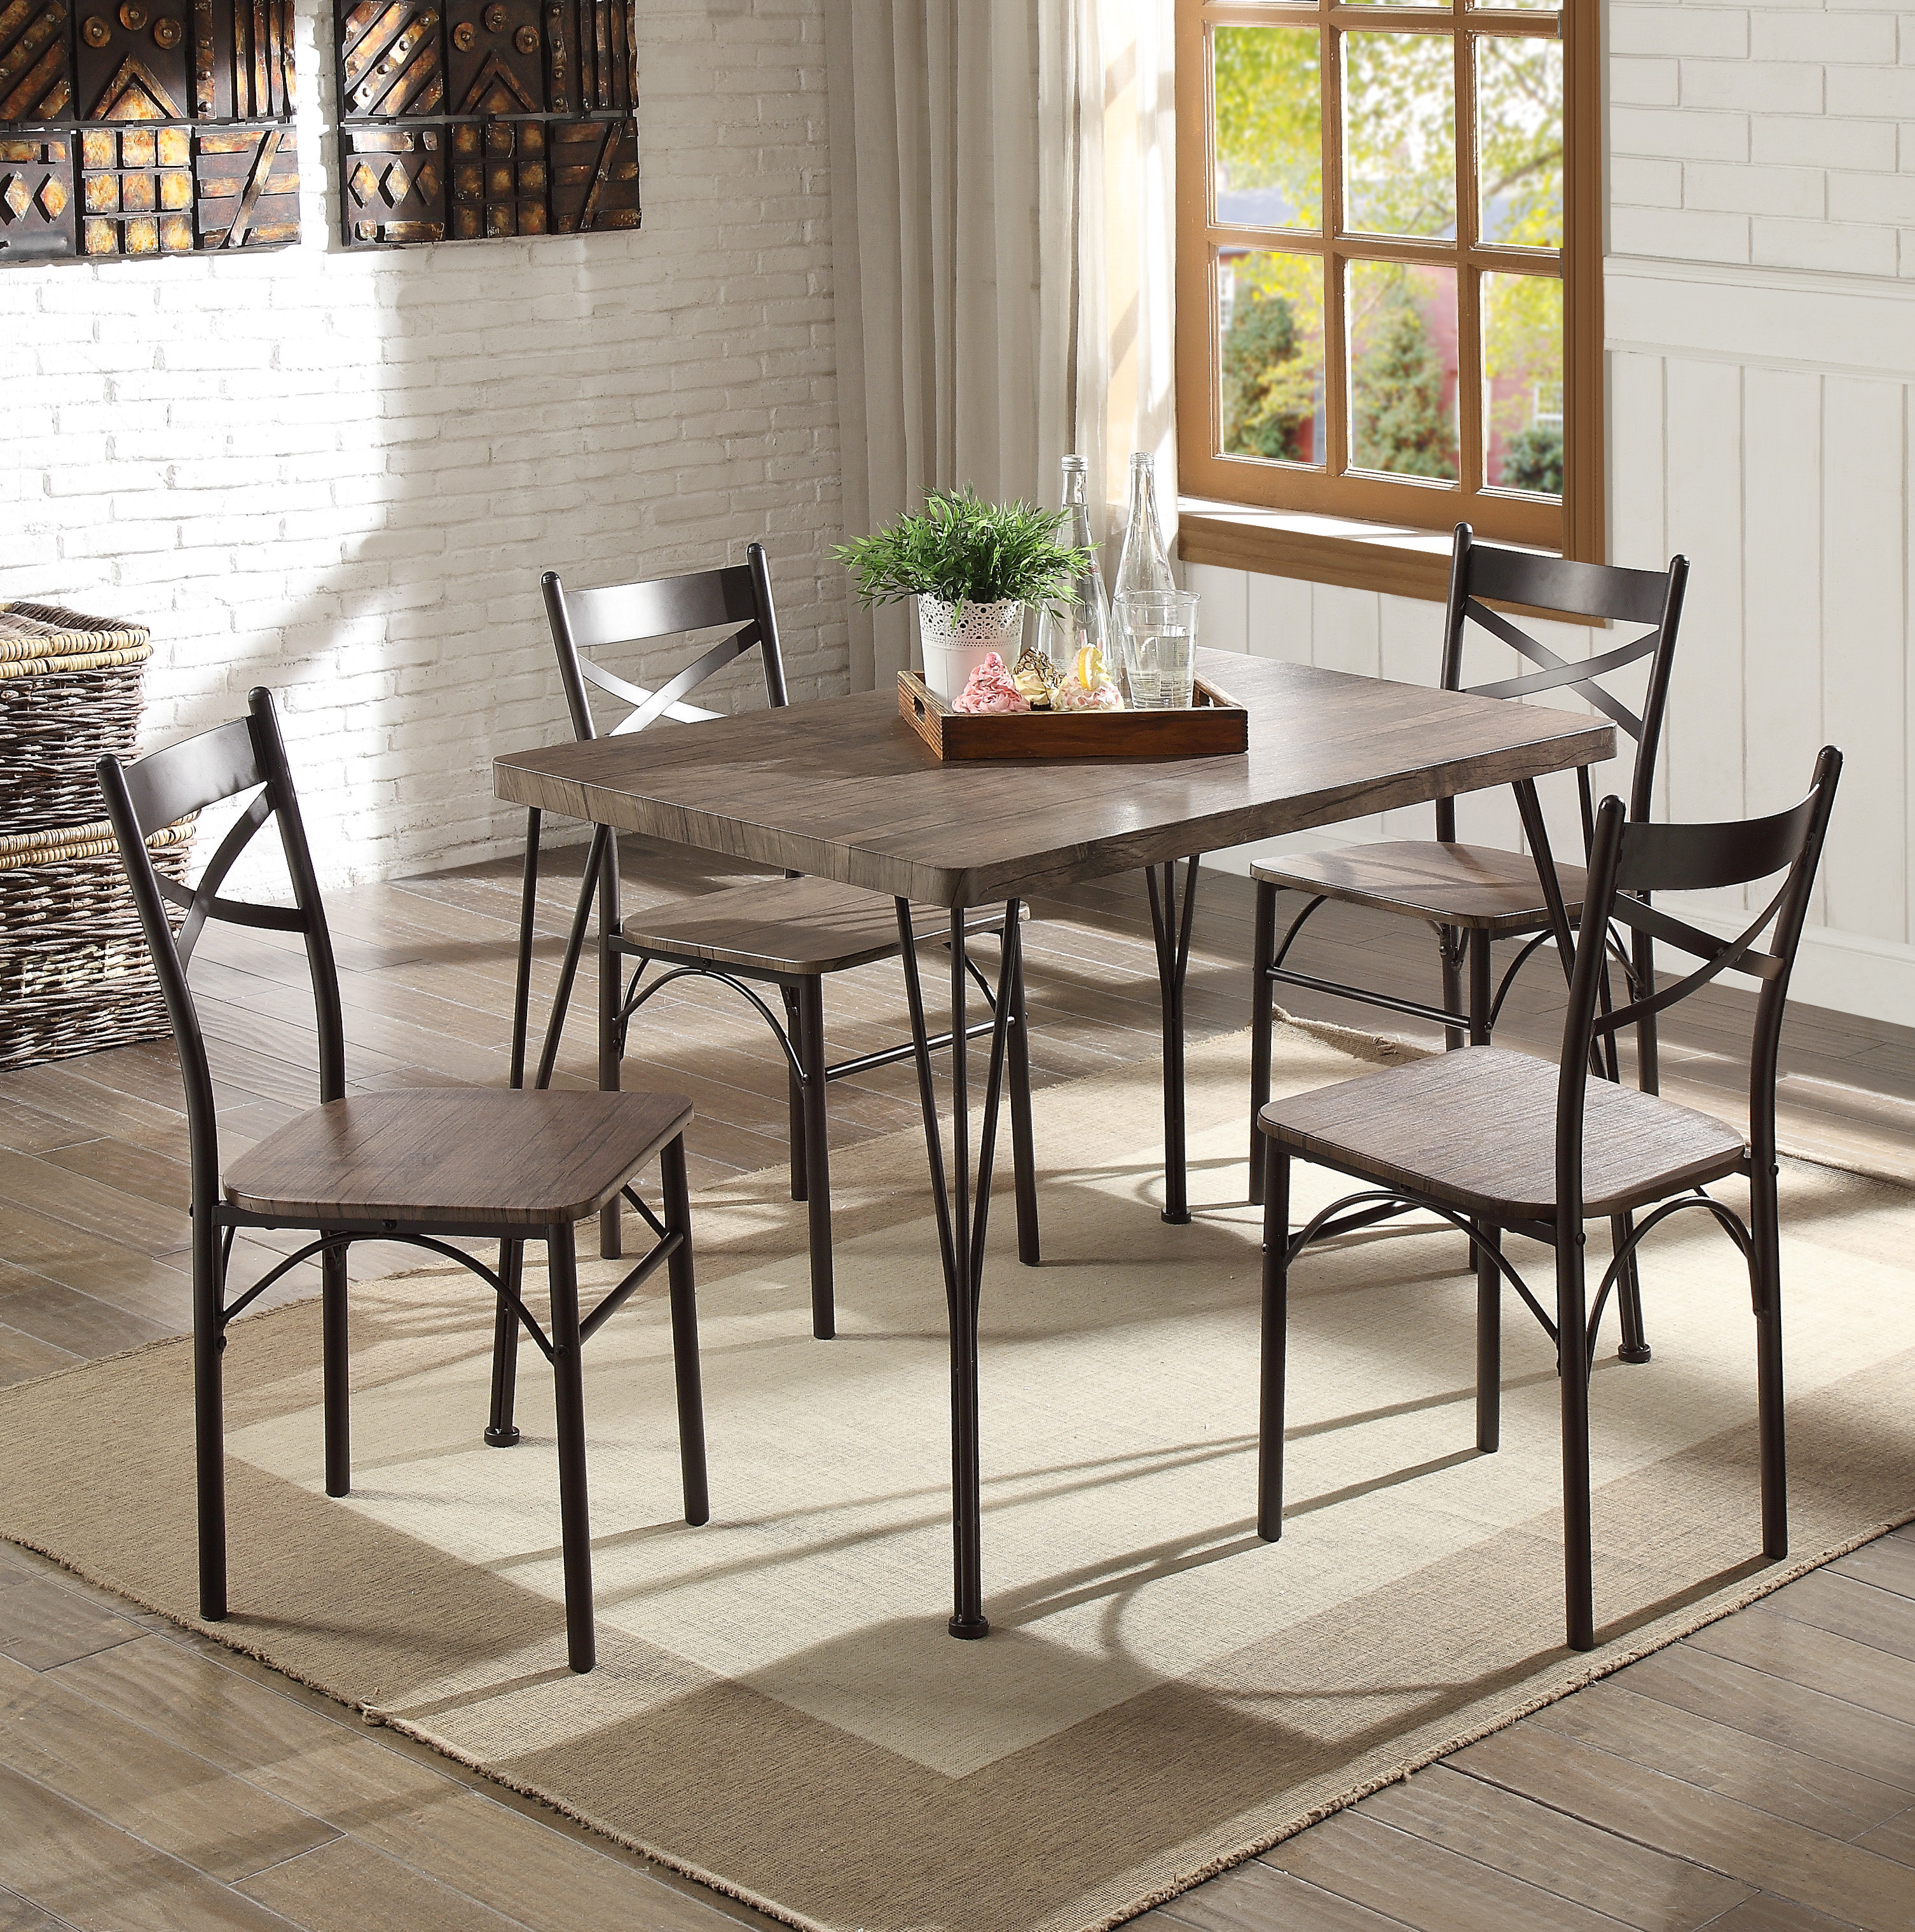 Wayfair Within Noyes 5 Piece Dining Sets (#20 of 20)